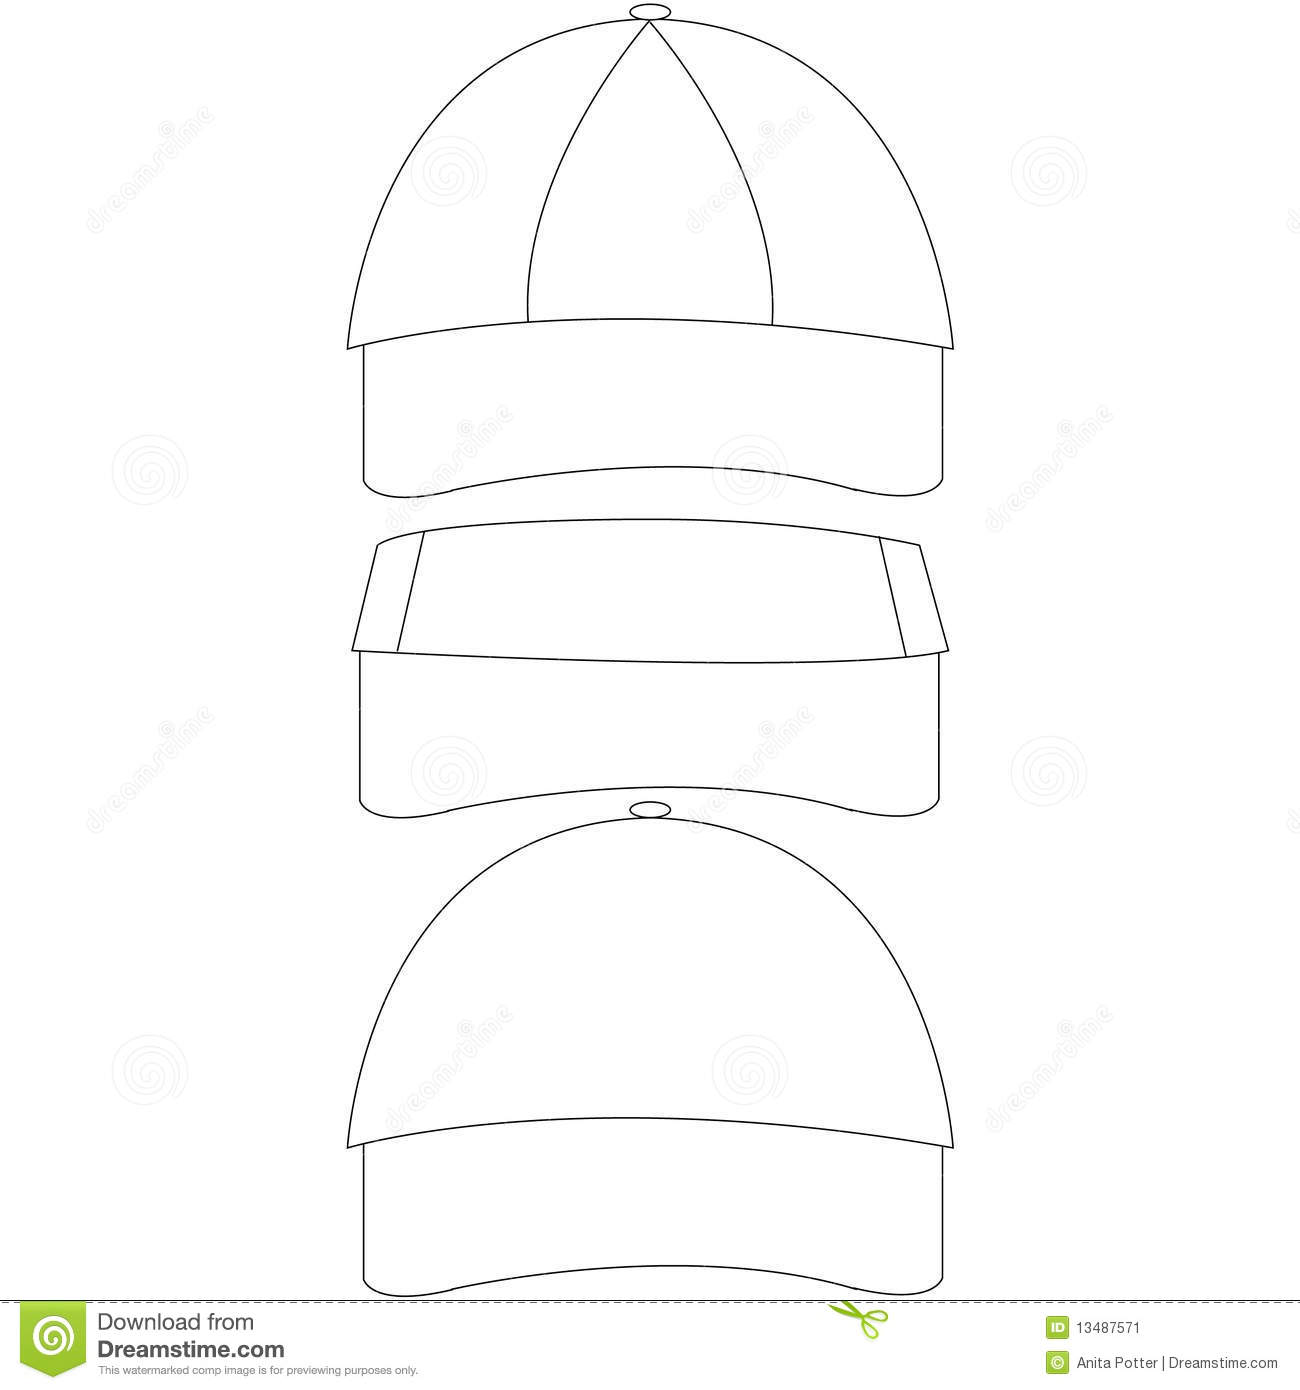 Blank Vector Calendar Template : Set of blank hat templates stock vector illustration